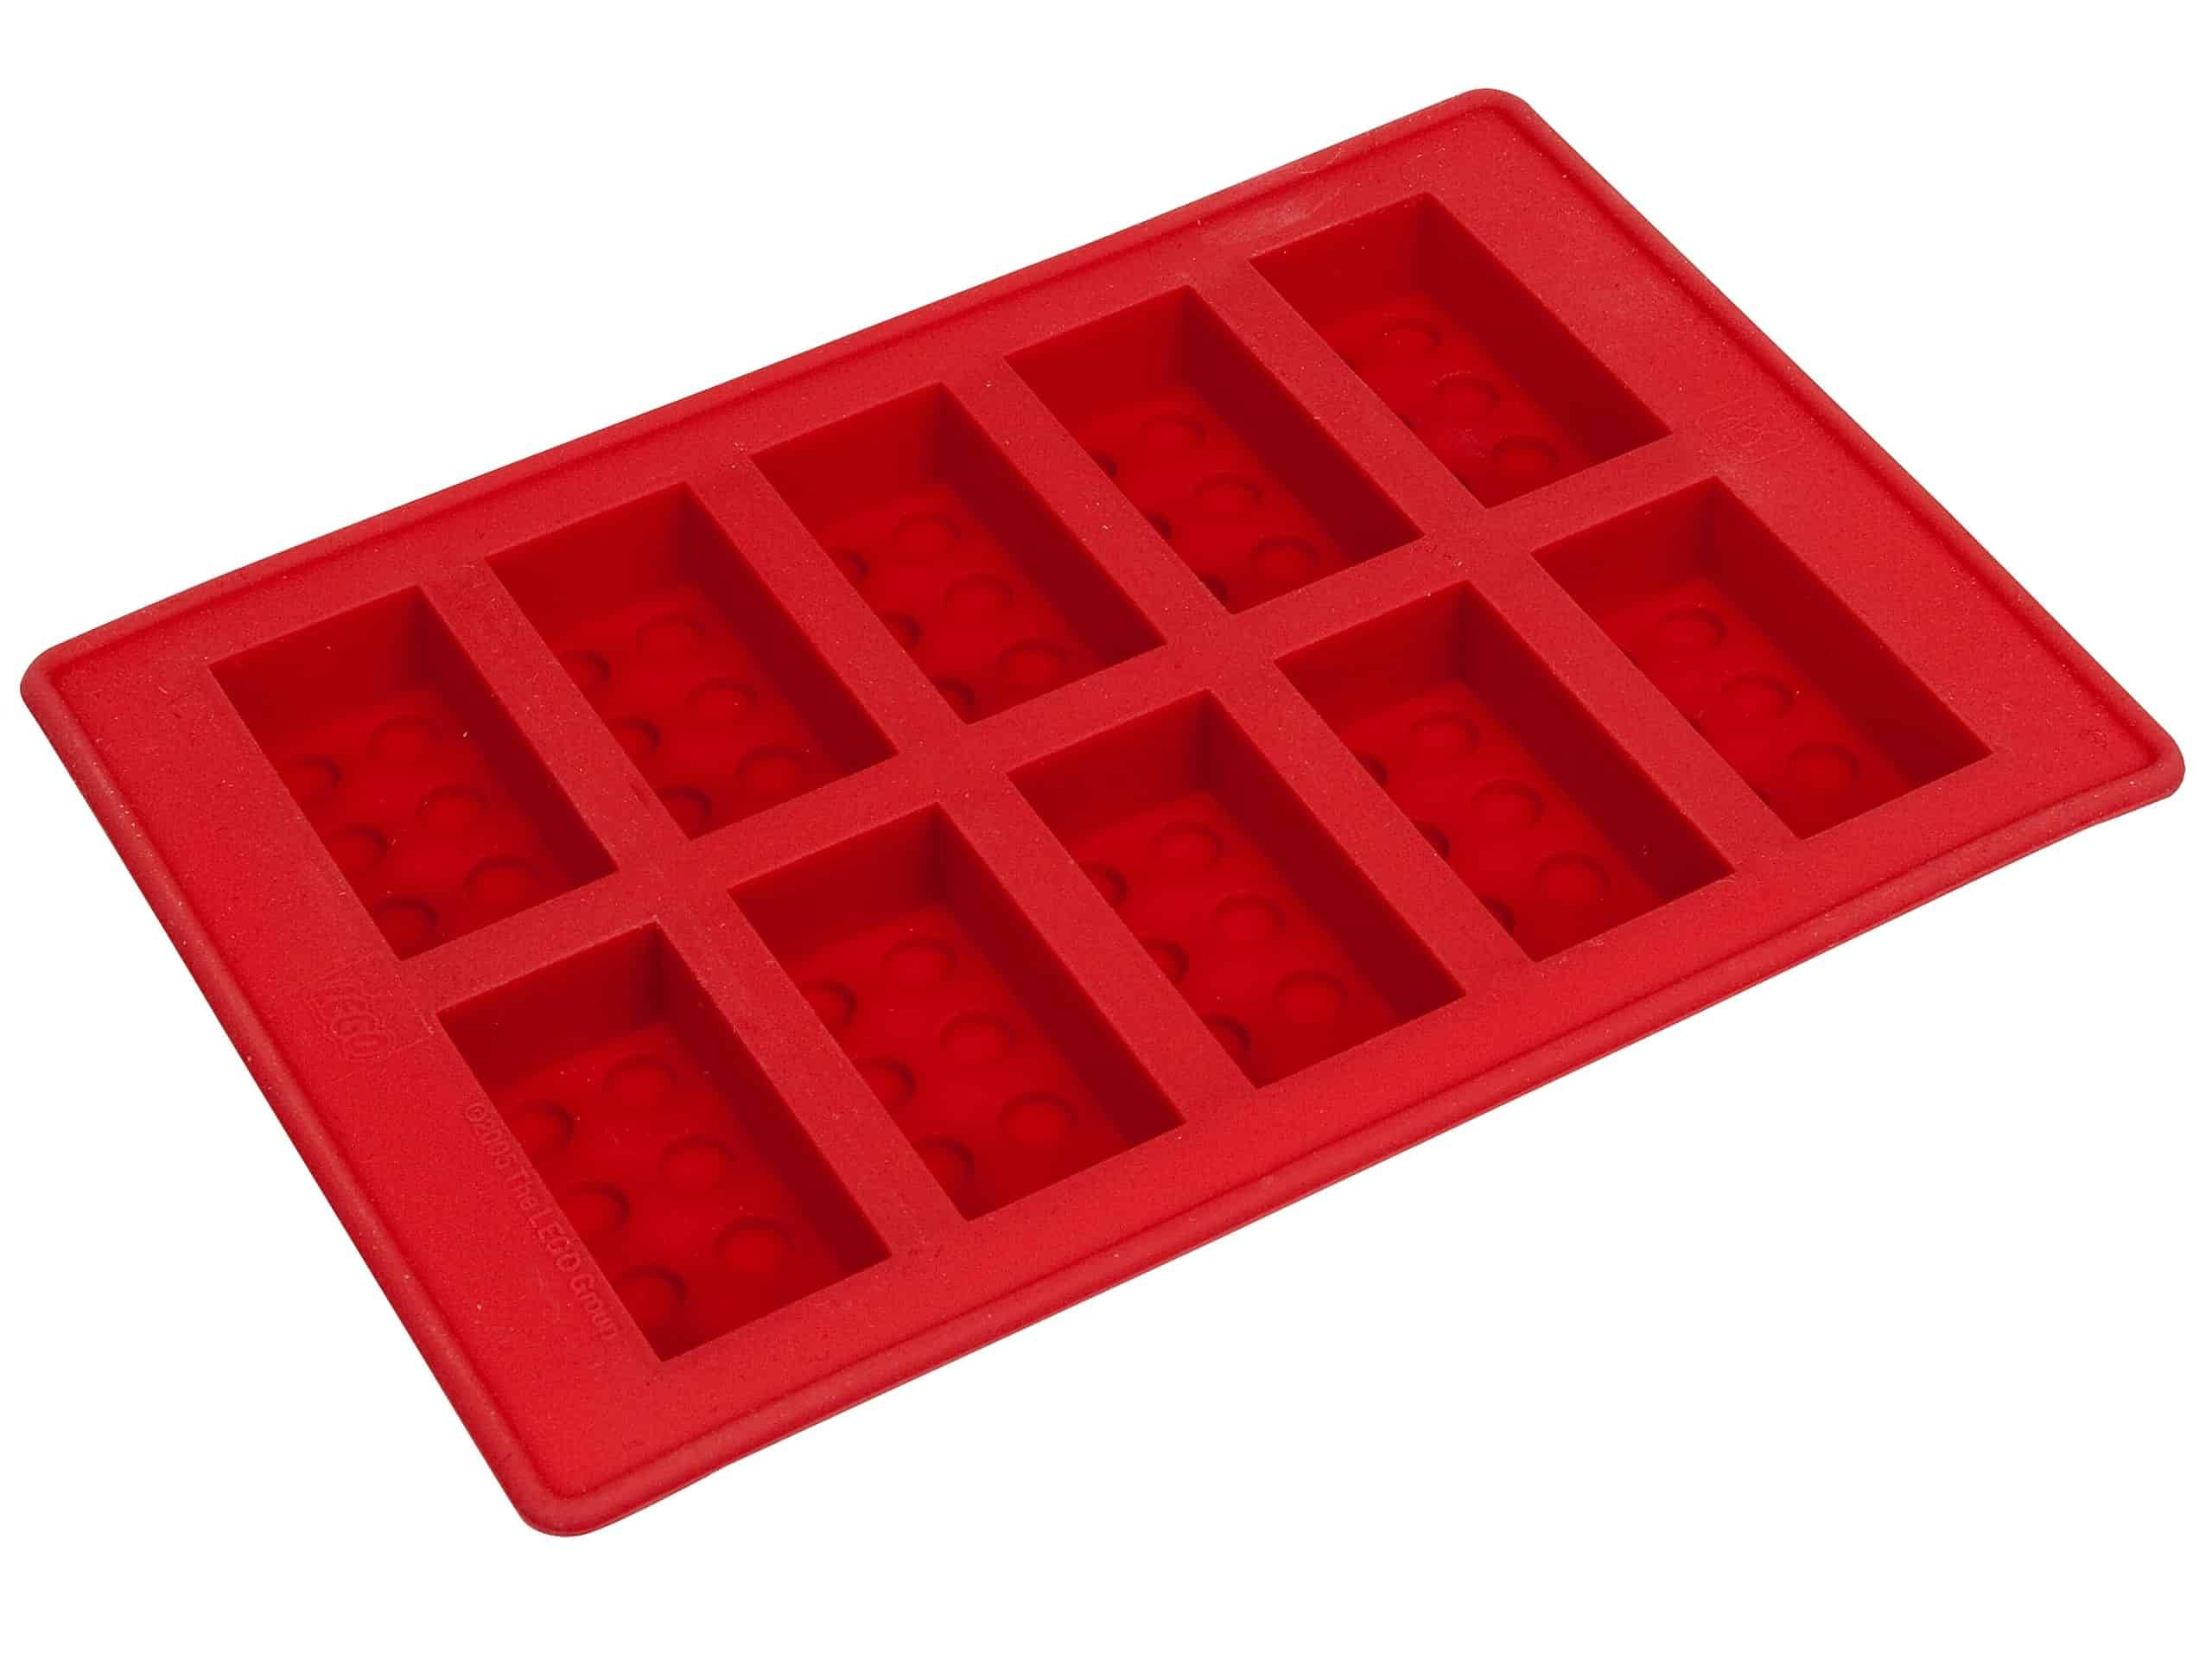 lego 852768 ice brick tray red scaled